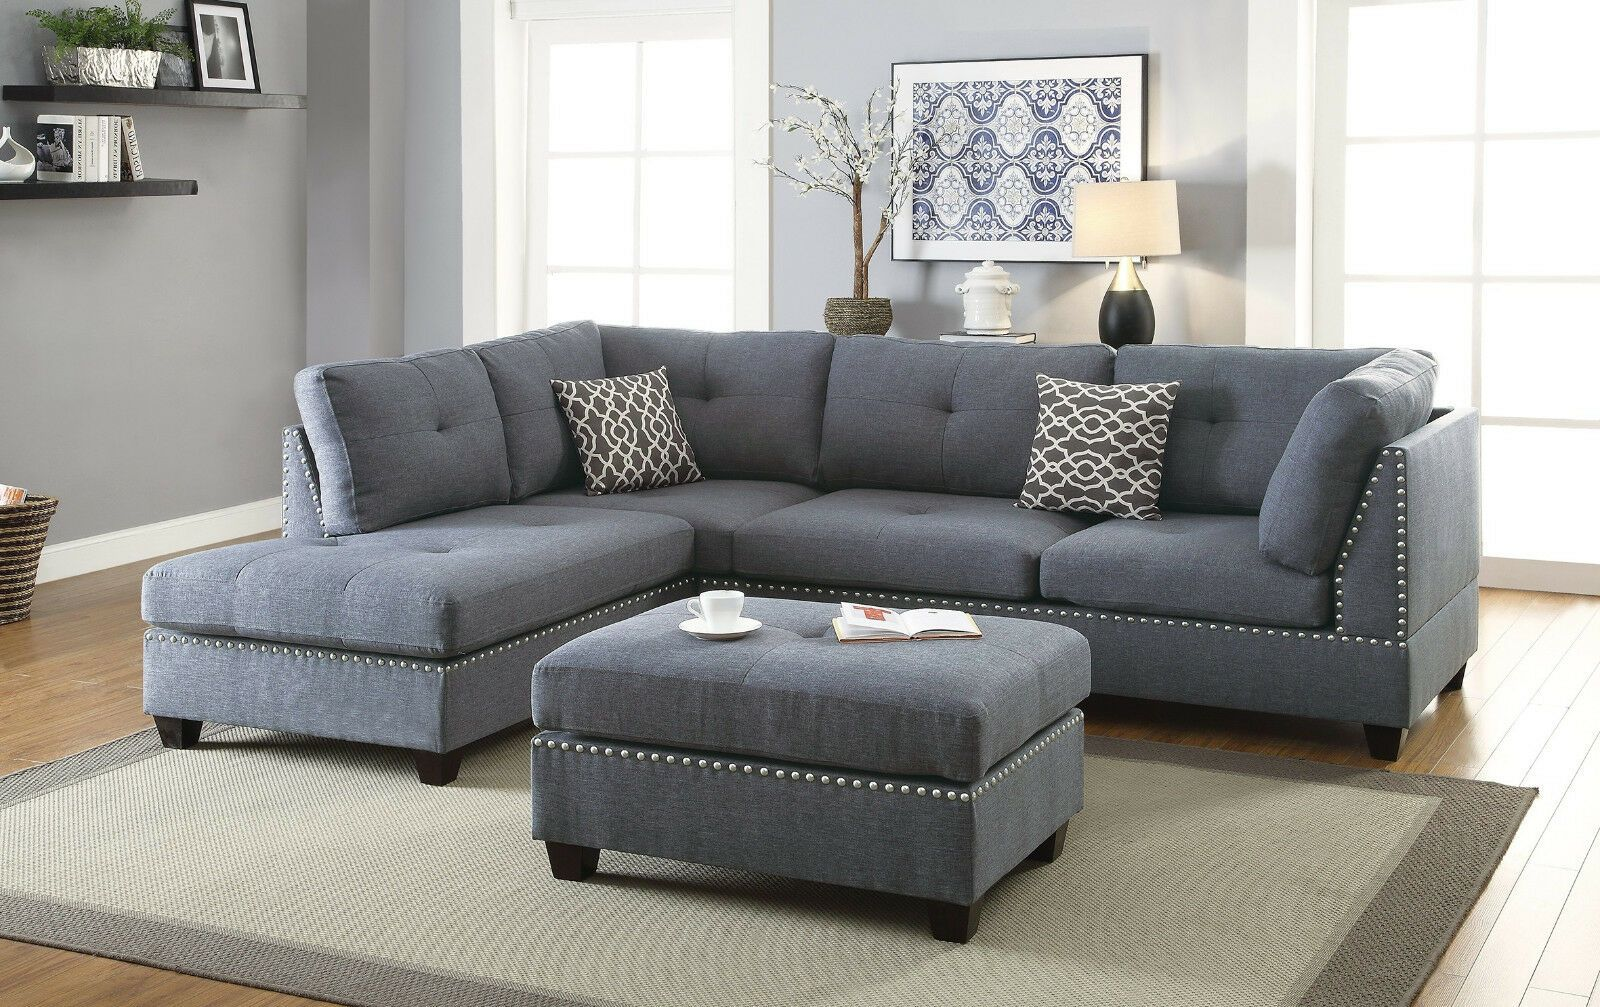 Living Room 3pcs Sectional Sofa Chaise Ottoman Blue Grey L Shape Sofa Furniture Grey S In 2020 Grey Sectional Sofa Gray Sectional Living Room Living Room Sofa Design